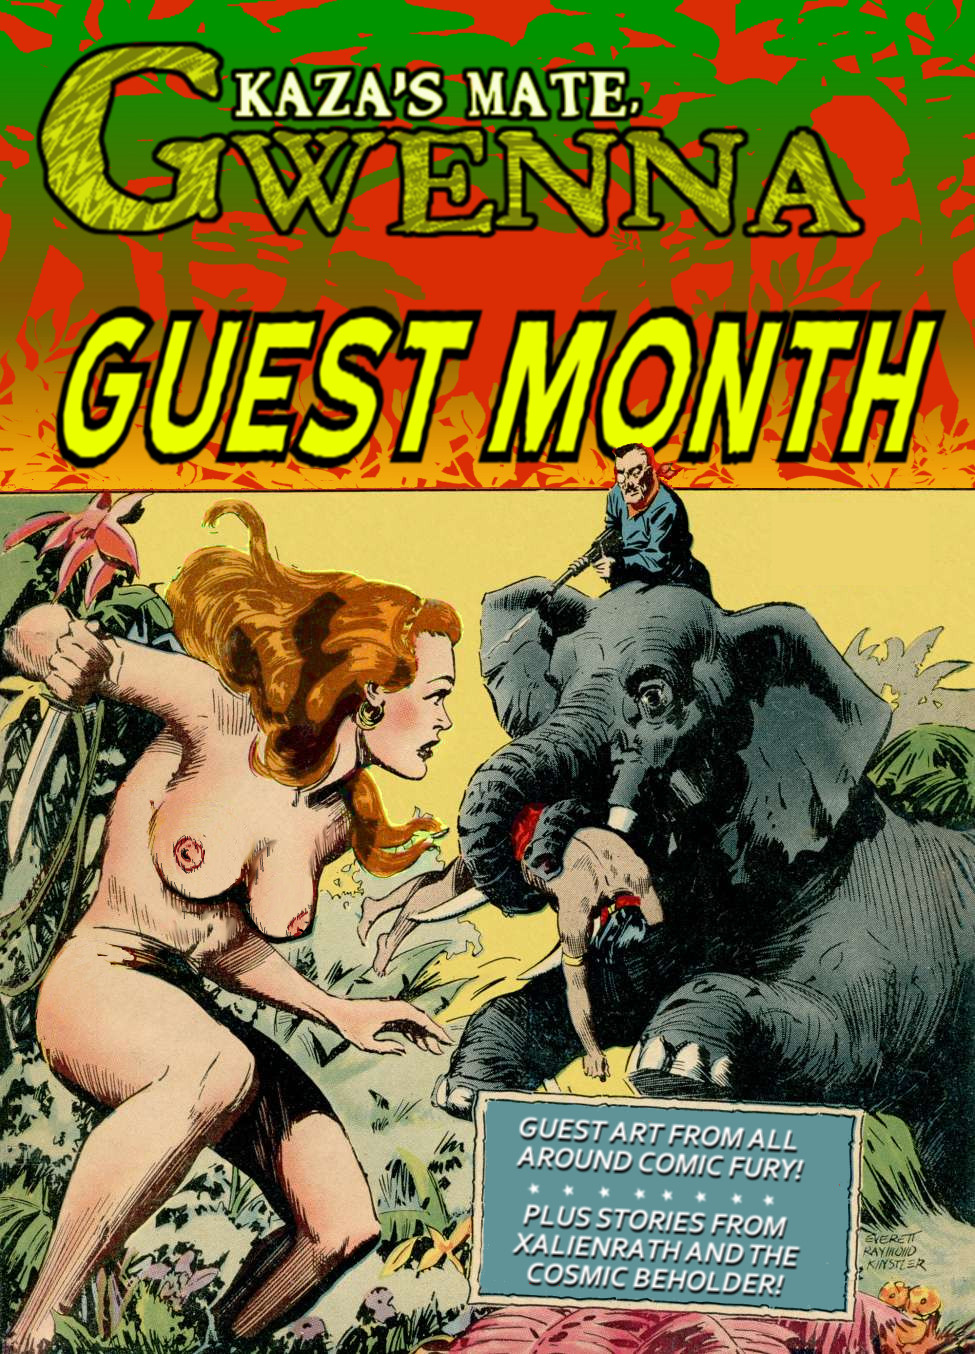 ---GUEST MONTH---